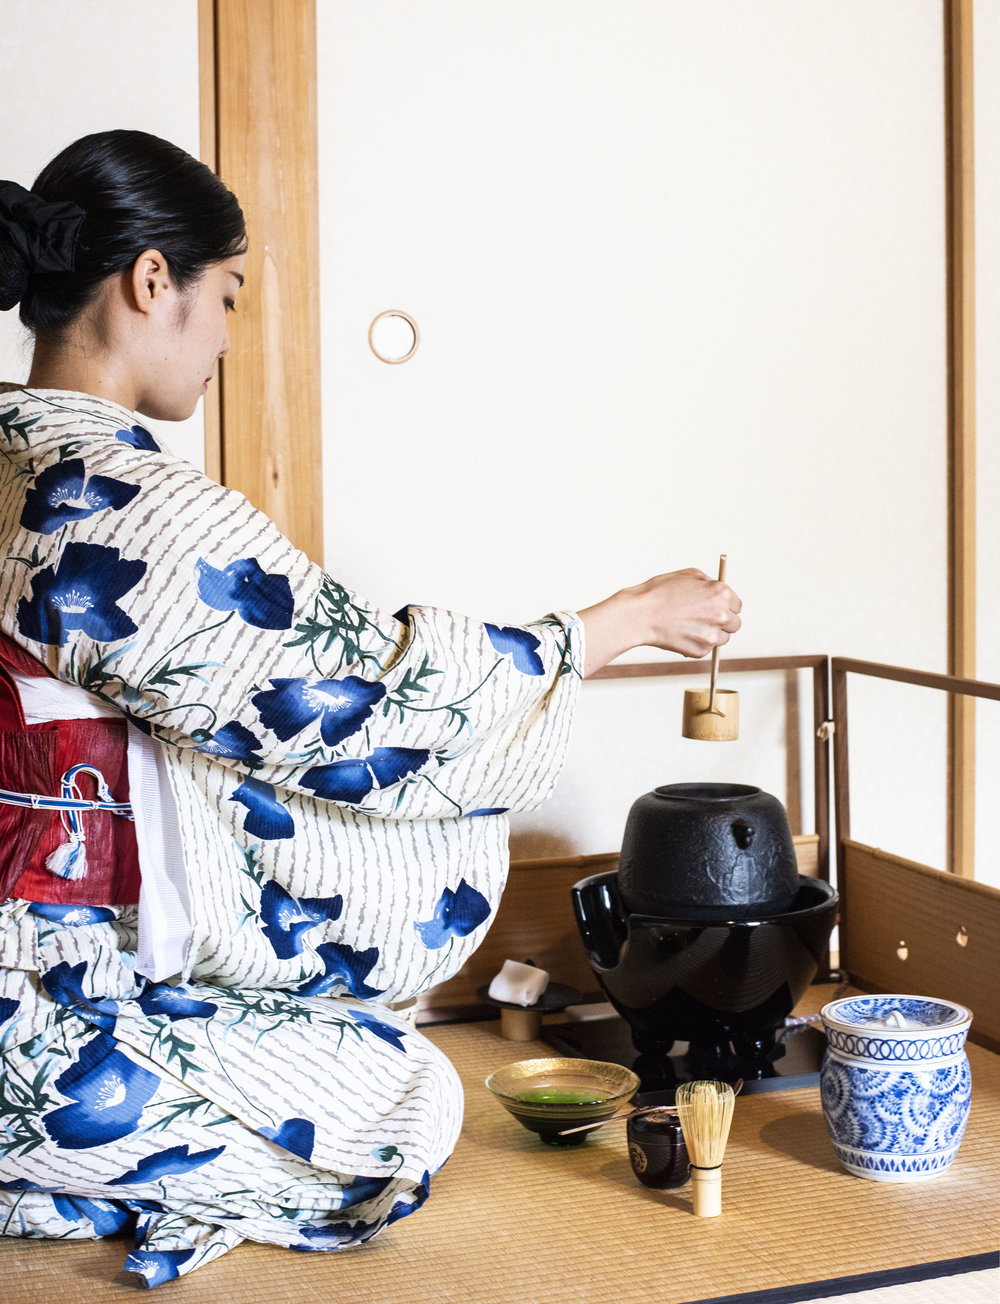 Matcha in the making at Camellia Flower Tea Ceremony, Kyoto